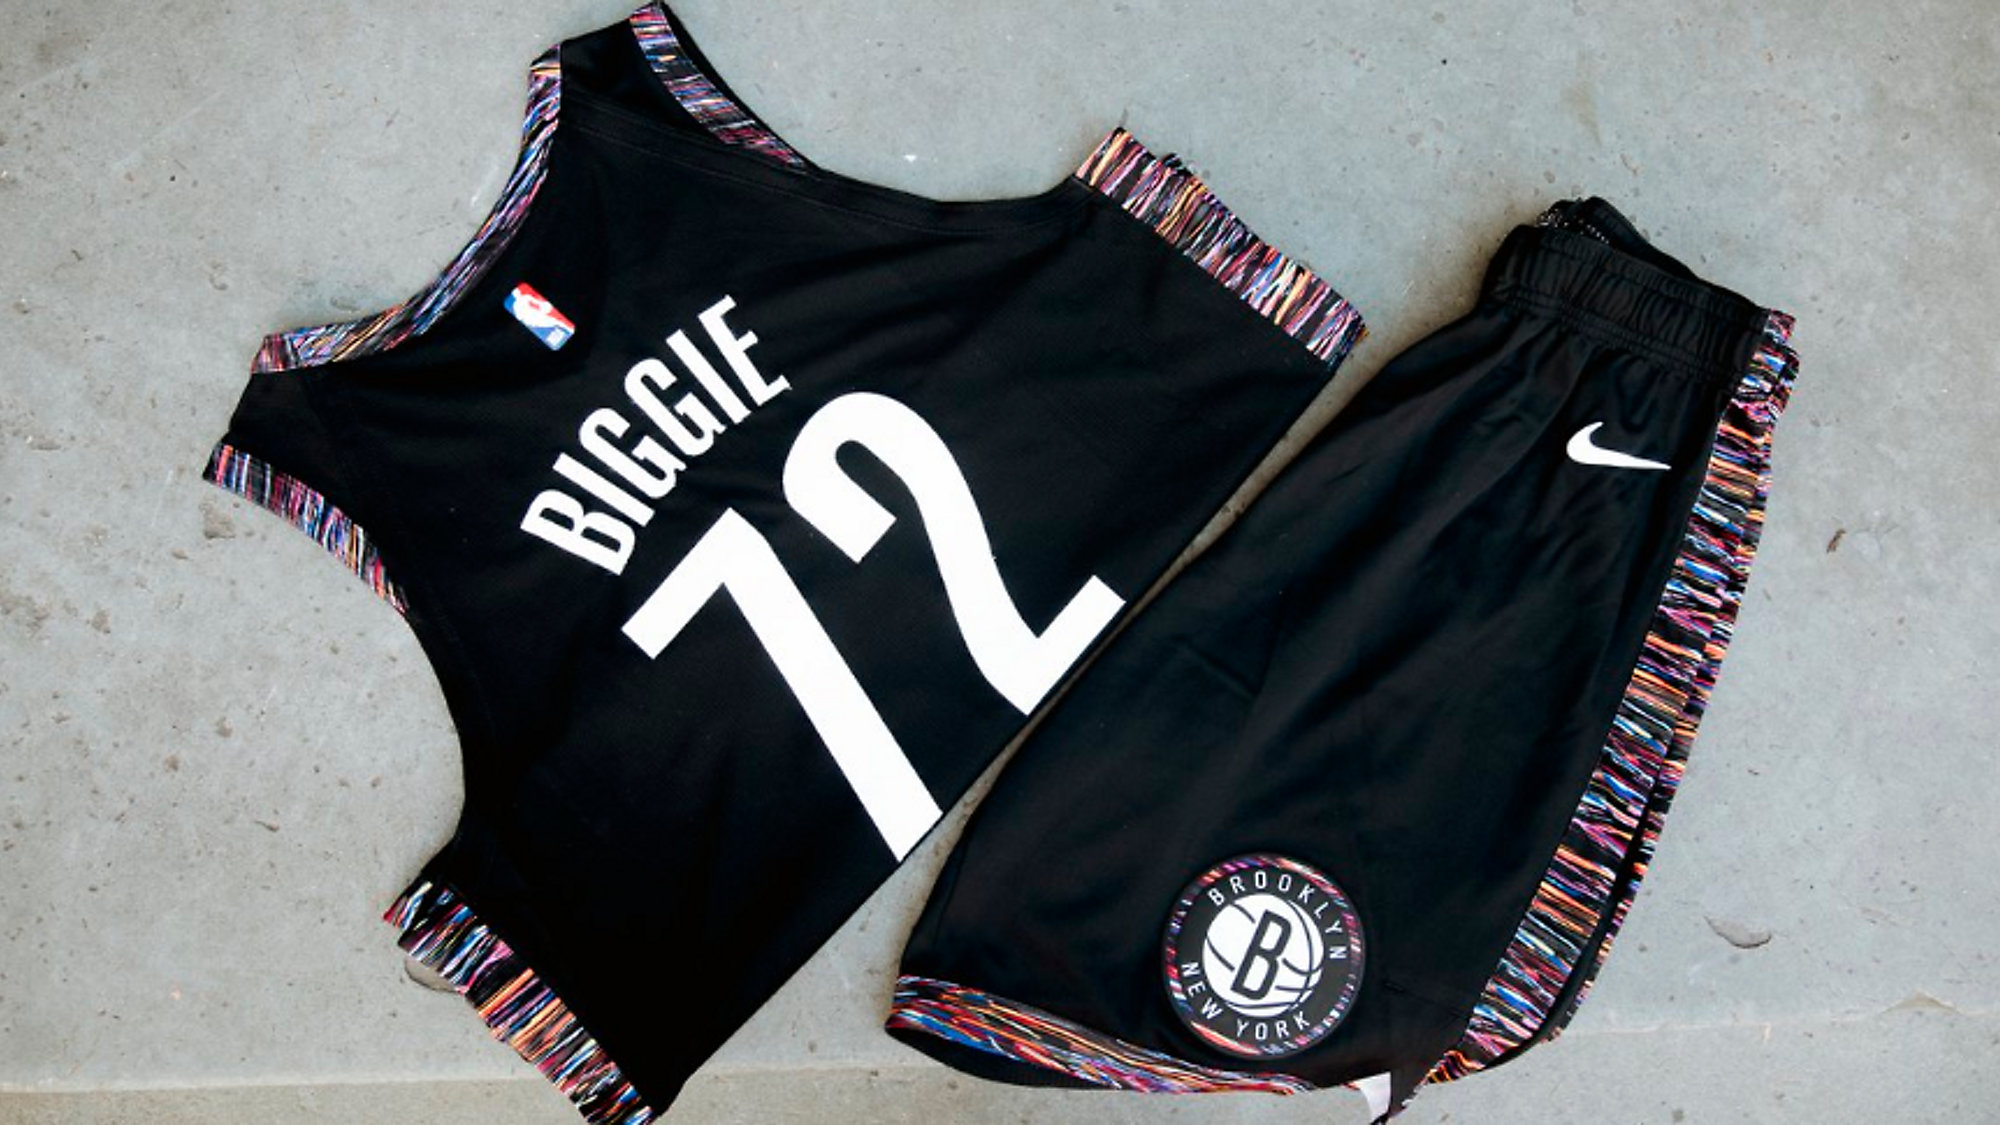 23d2c06dc82 ... amazon brooklyn nets to wear jerseys honoring notorious b.i.g. 62847  6db77